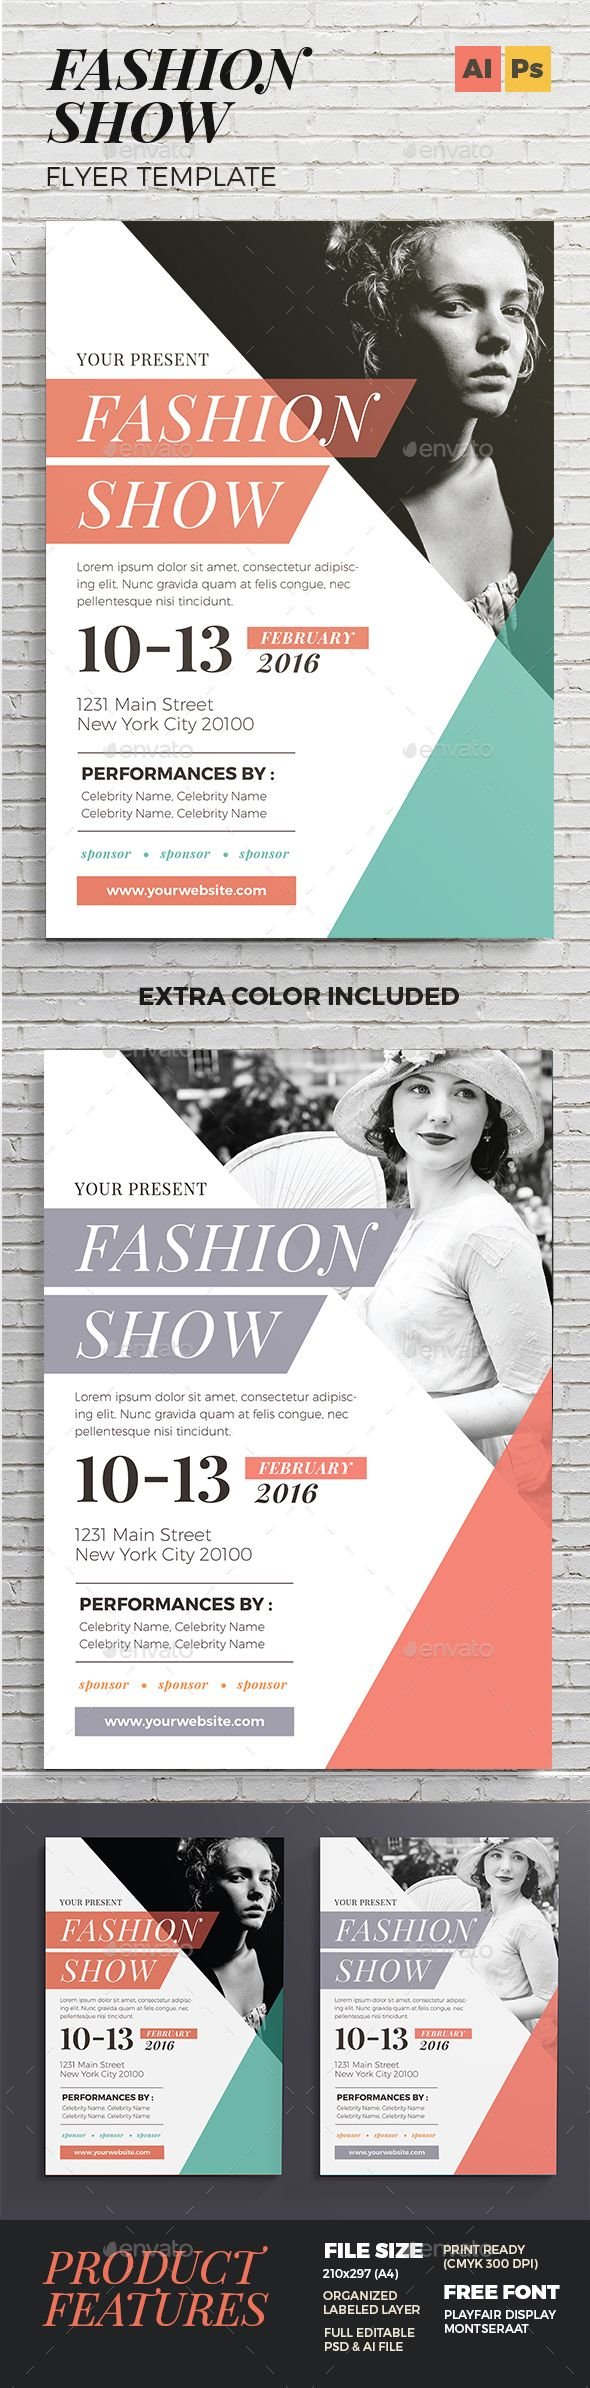 Fashion Show Flyer Template PSD, Vector AI #design Download: http://graphicriver.net/item/fashion-show-flyer/14496004?ref=ksioks                                                                                                                                                                                 More